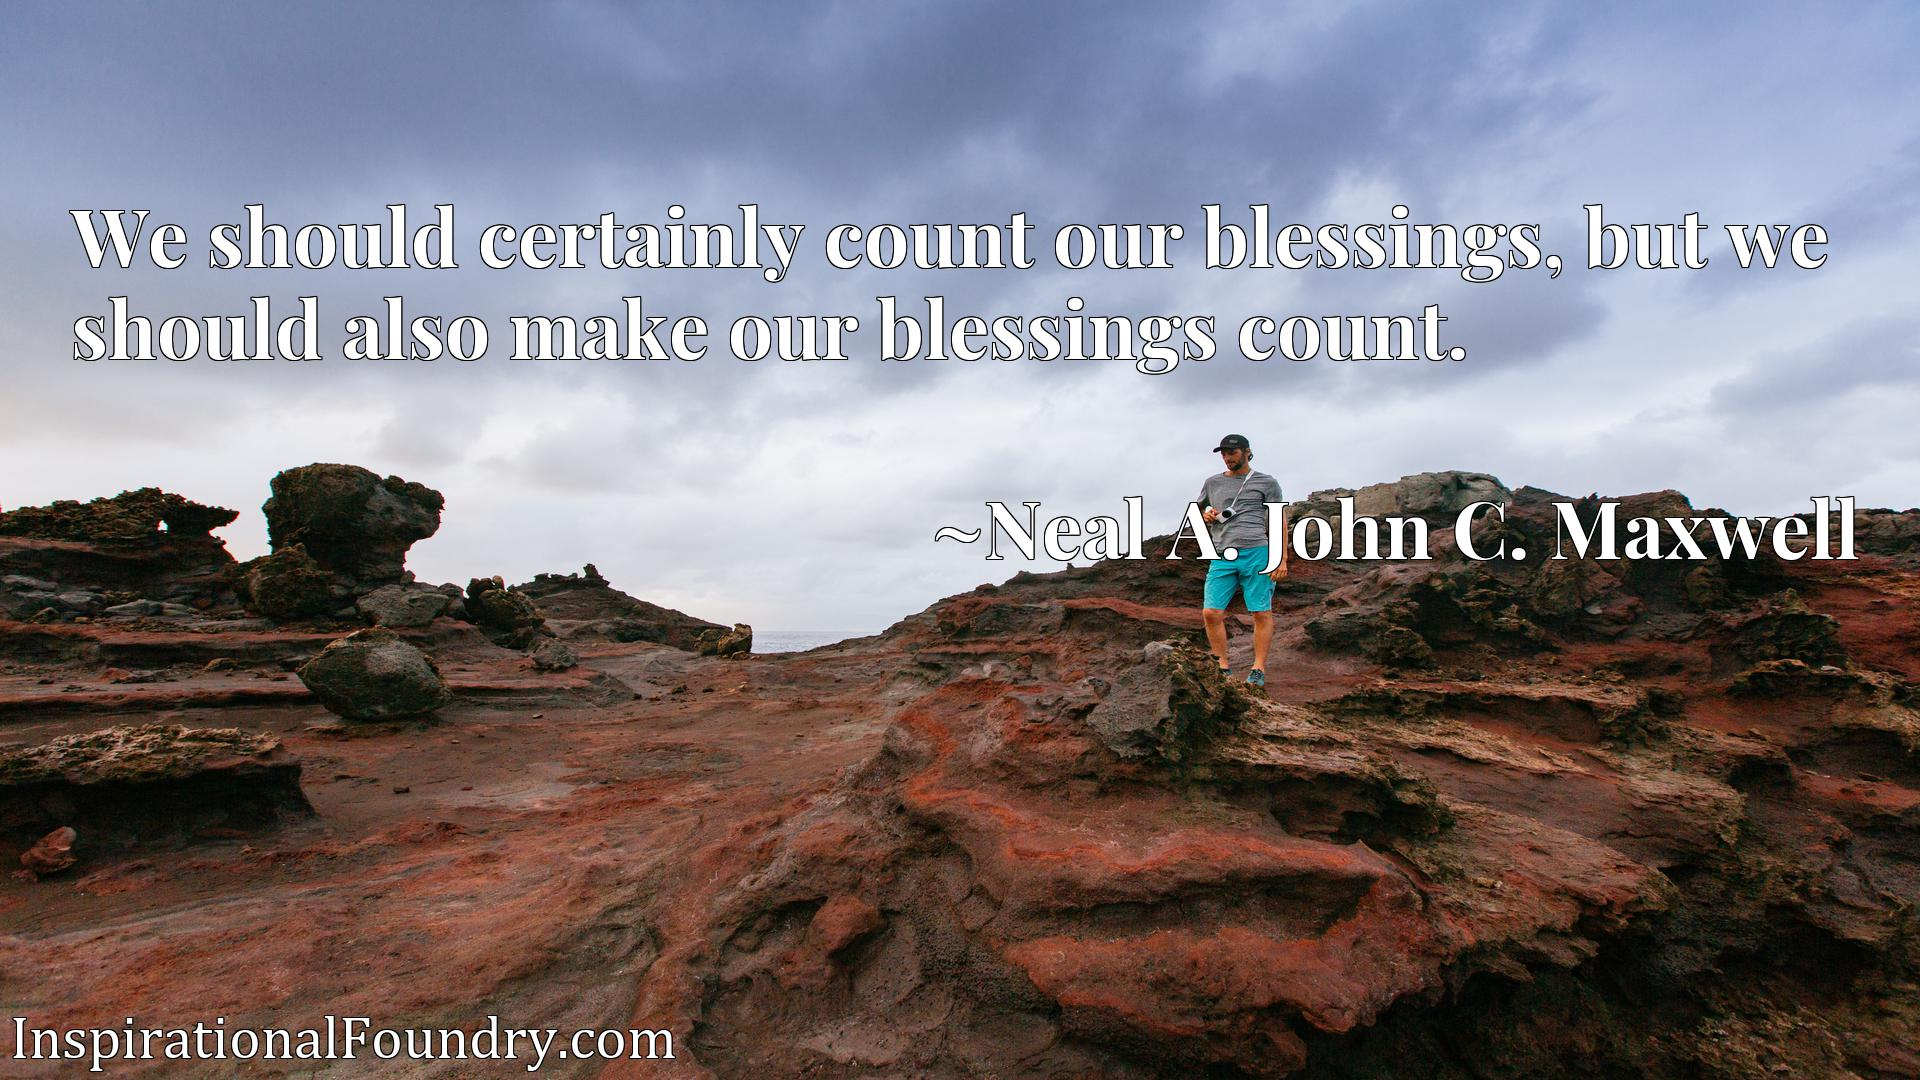 We should certainly count our blessings, but we should also make our blessings count.